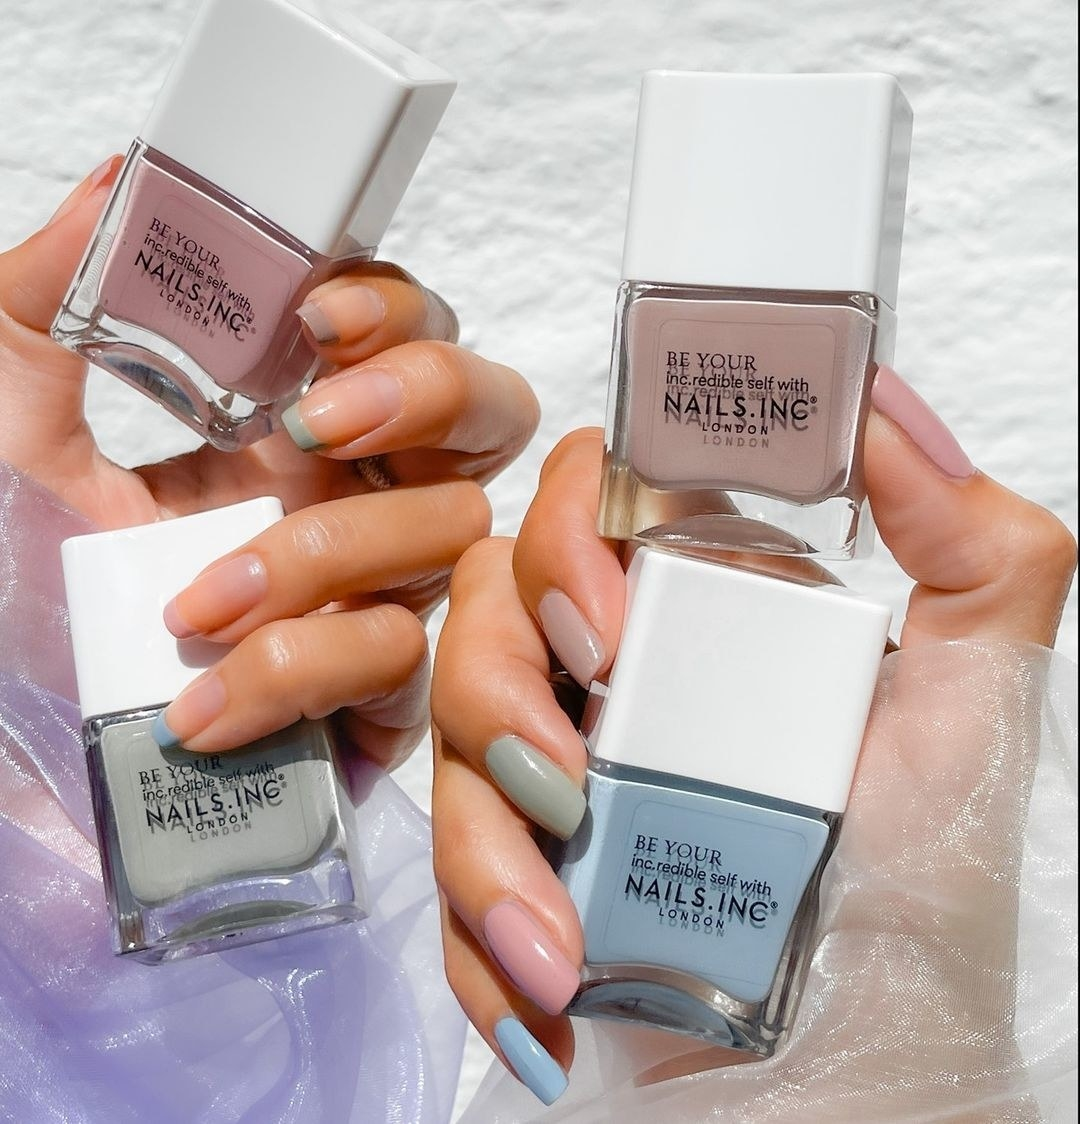 A pair of hands holding up all four shades of the vegan nail polishes